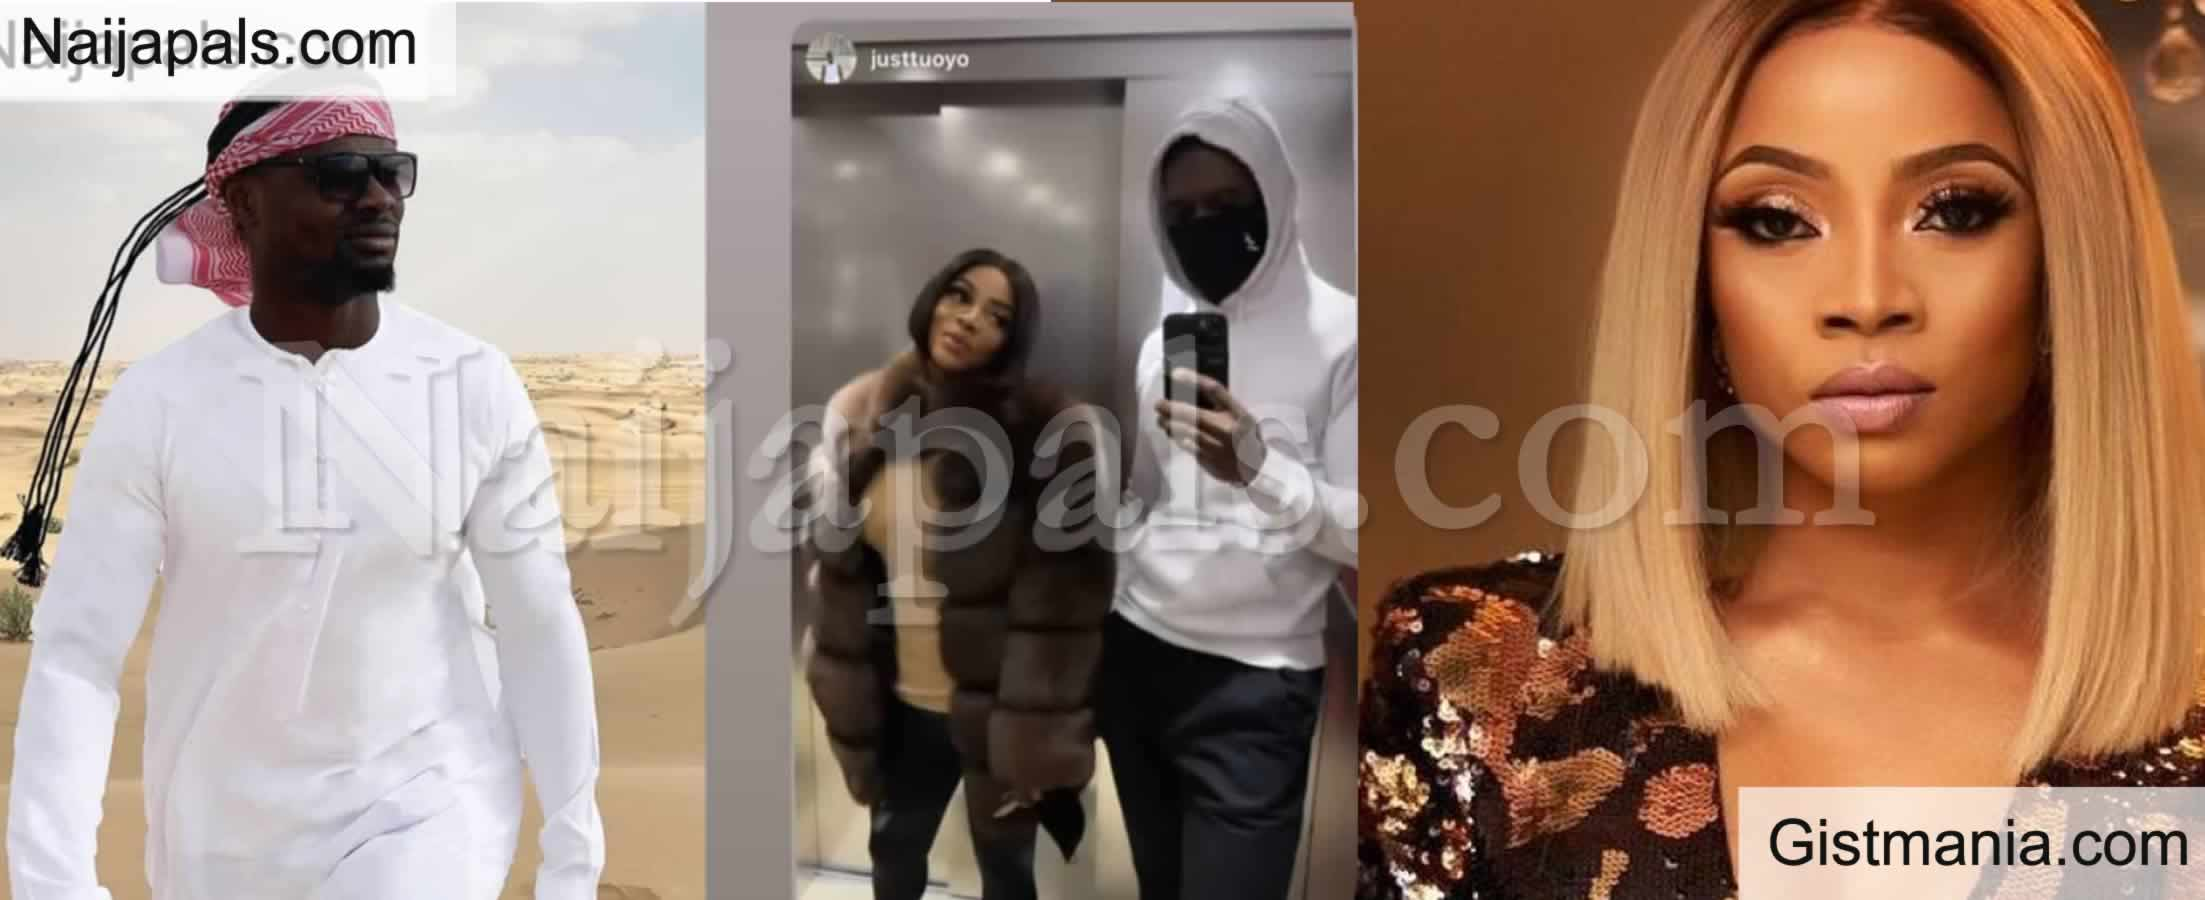 <img alt='.' class='lazyload' data-src='https://img.gistmania.com/emot/comment.gif' /> Im Not His Mother, Nor a Rehabilitation Centre - <b>Toke Makinwa Talks About Men With Issues</b>